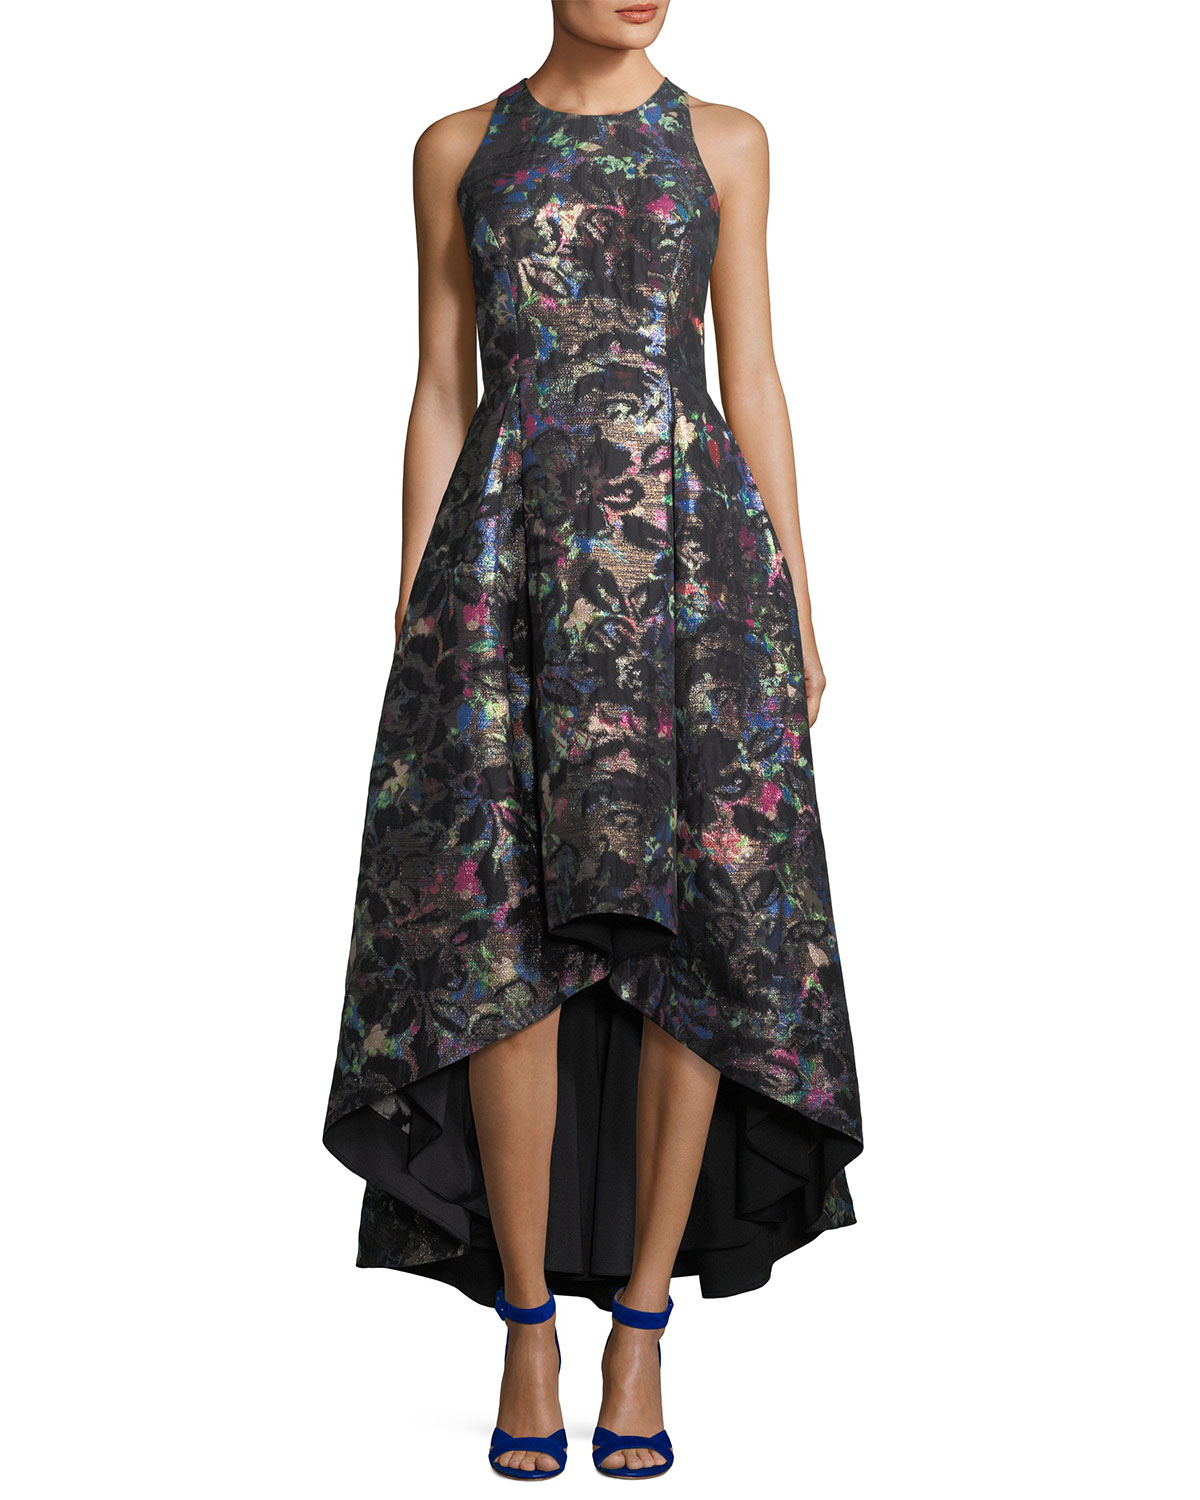 642cdb6a8c00 Aidan by Aidan Mattox Sleeveless Printed Jacquard Metallic High-Low Dress